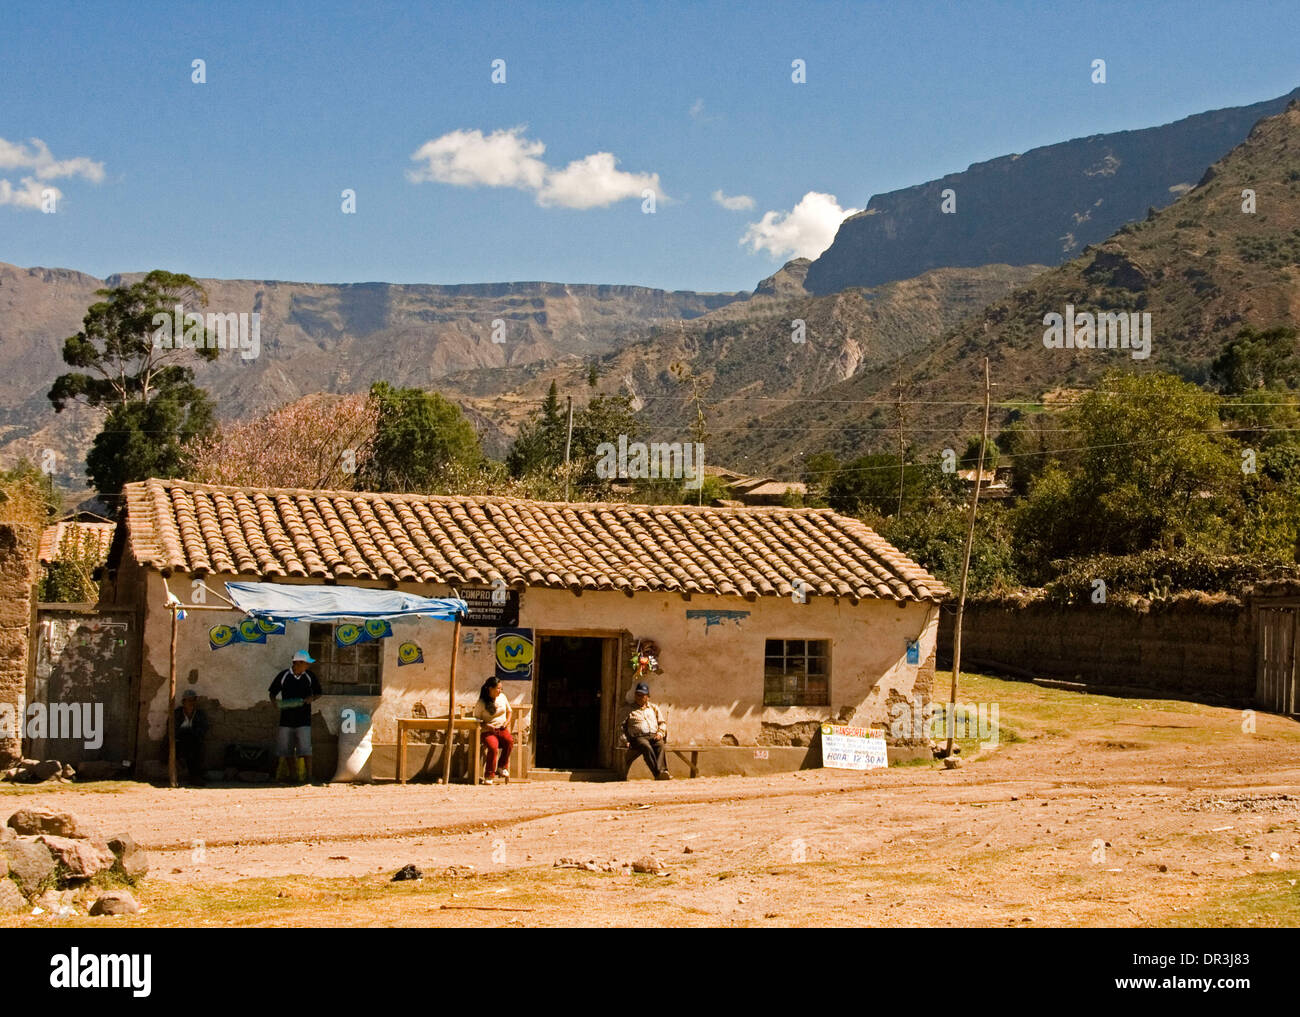 Mountain living near cusco peru royalty free stock photo - Roadside Restaurant In Village Near Cusco Peru Simple Adobe Building By Dirt Road At Foot Of Steep Slopes Of Andes Mountains